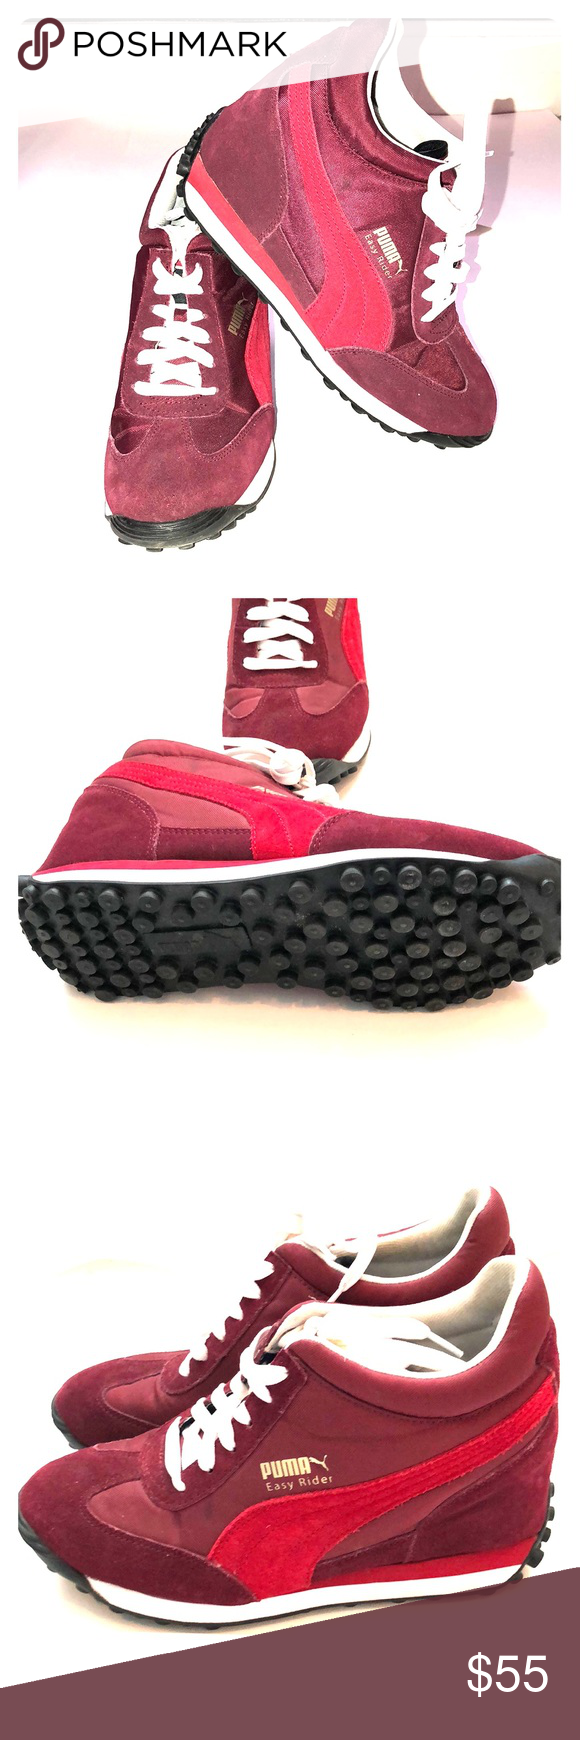 632d9e5cc40abc Puma Wedge Heel Sneakers Puma Wedge Heel Tennis Shoes Suede Accent Color Burgundy  Puma Shoes Sneakers